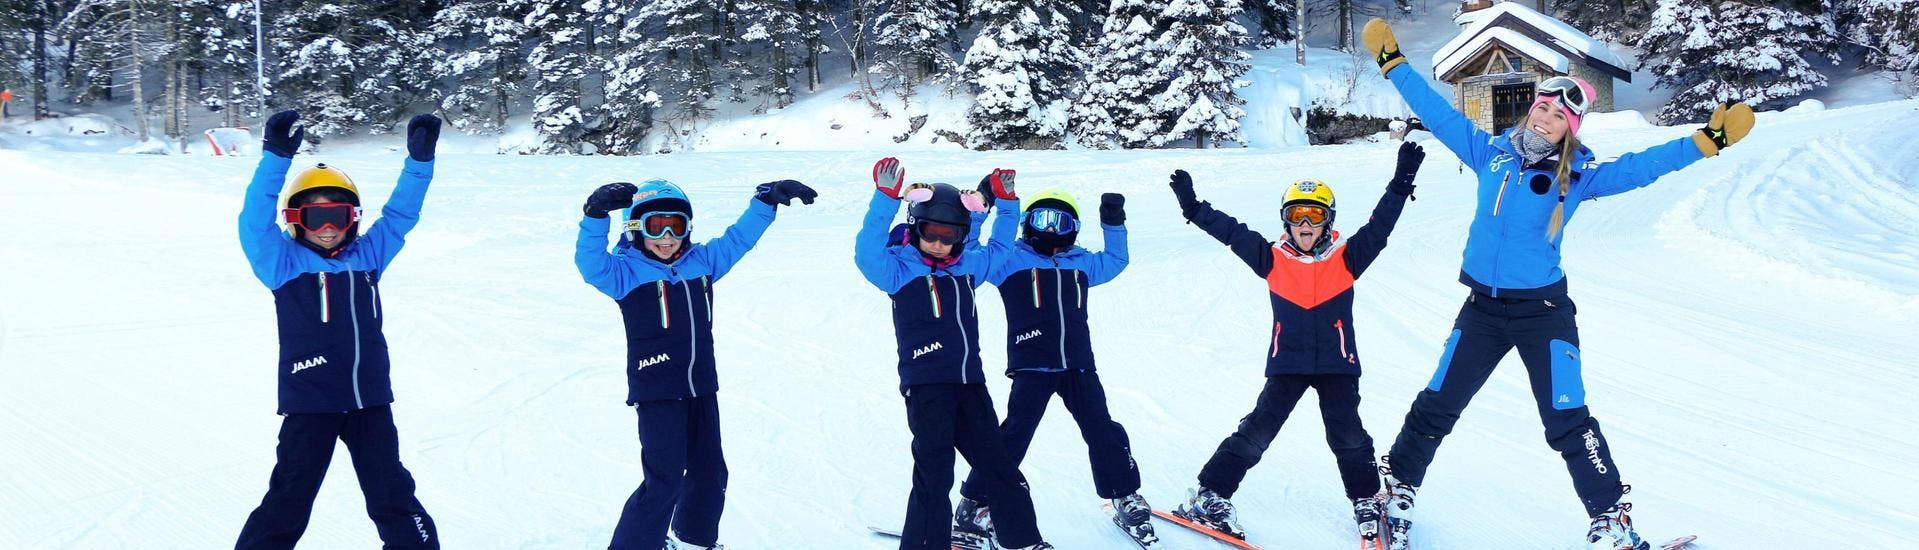 A group of kids is enjoying one of their private ski lessons with their ski instructor from the ski school Scuola di Sci e Snowboard Alpe Cimbra in the ski resort of Folgaria.